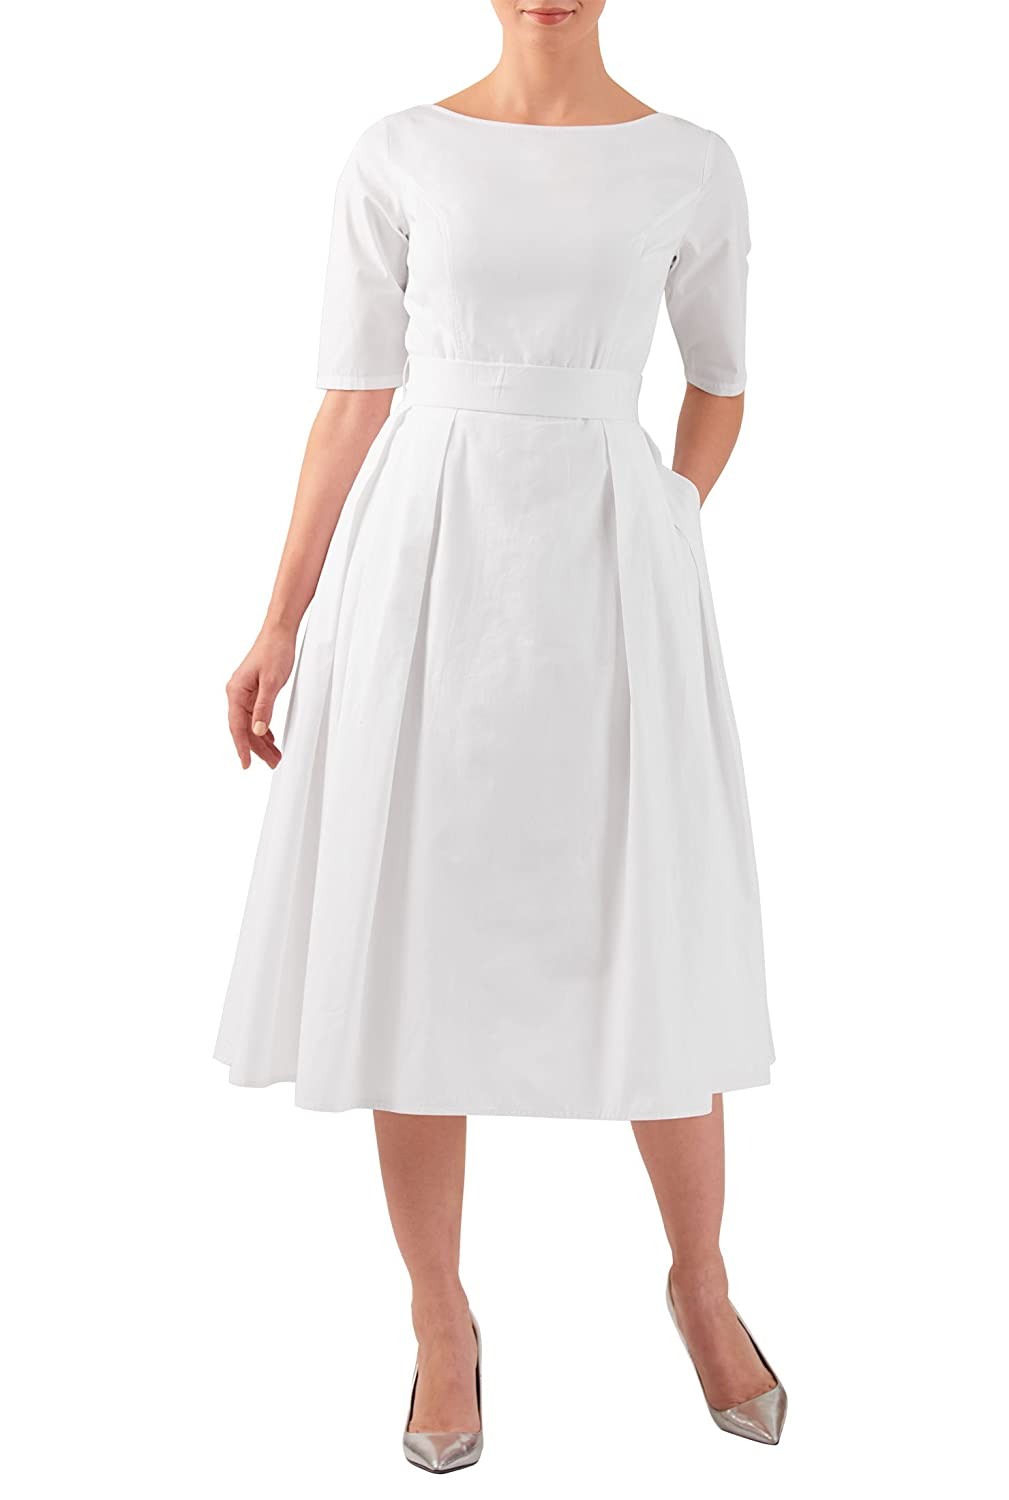 60s 70s Plus Size Dresses, Clothing, Costumes eShakti Womens Quincy dress $49.95 AT vintagedancer.com